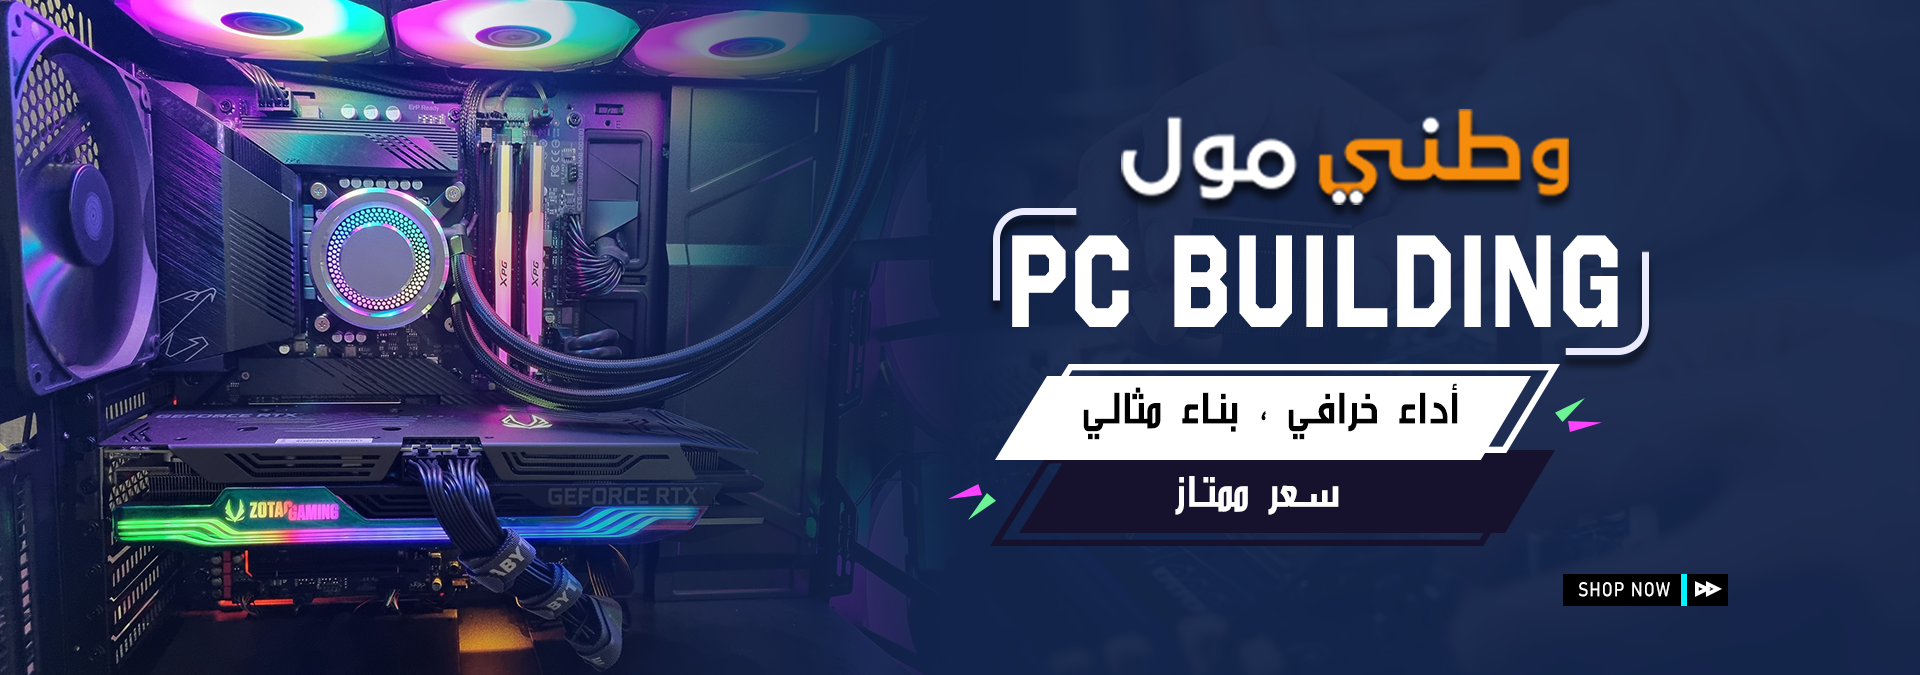 Pc Building Banner